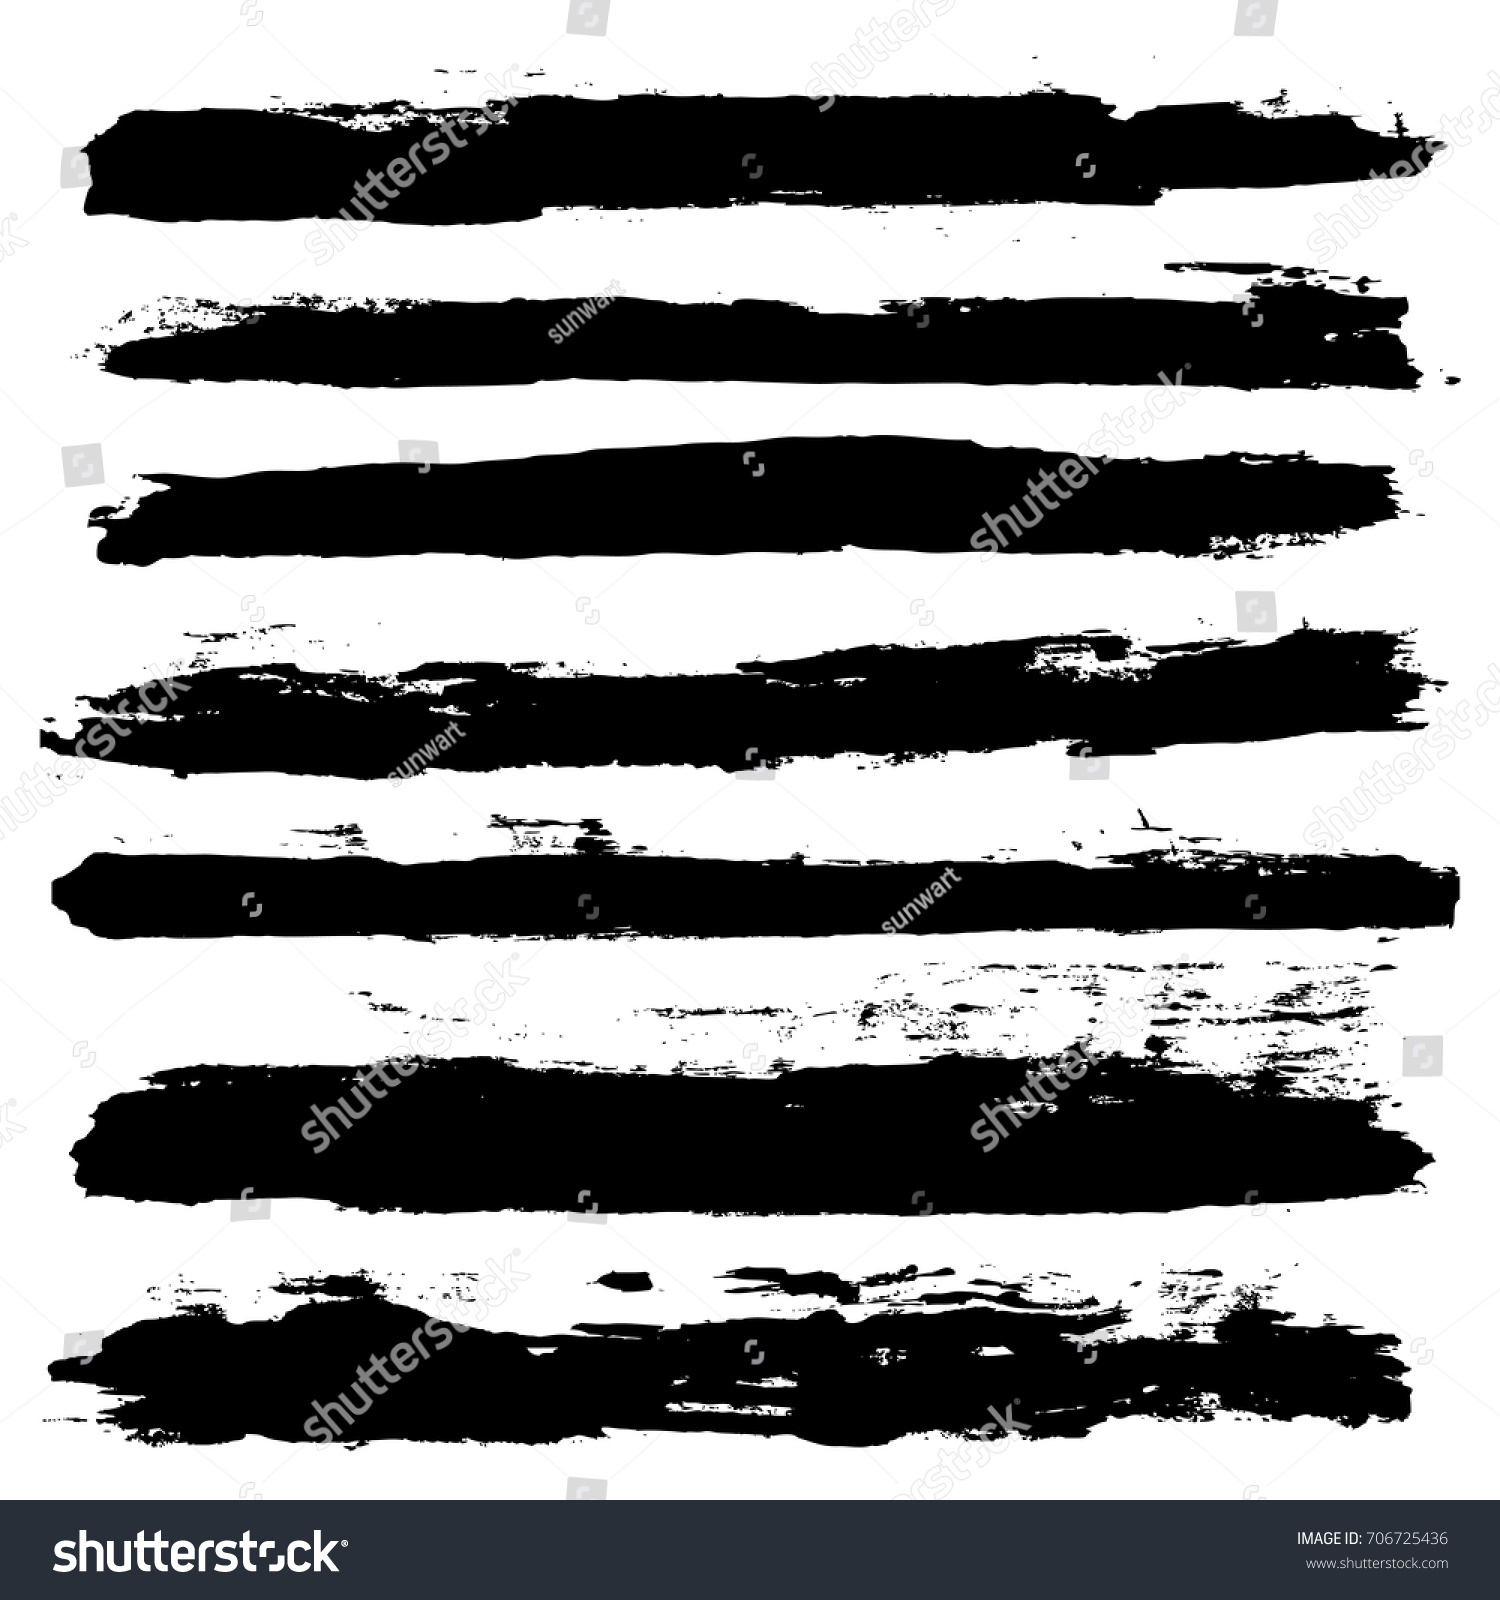 black brush strokes set backgrounds. Artistic  lines grunge collection. Set of black grungy hand painted brush strokes isolated on white. Abstract ink texture, design elements. #706725436